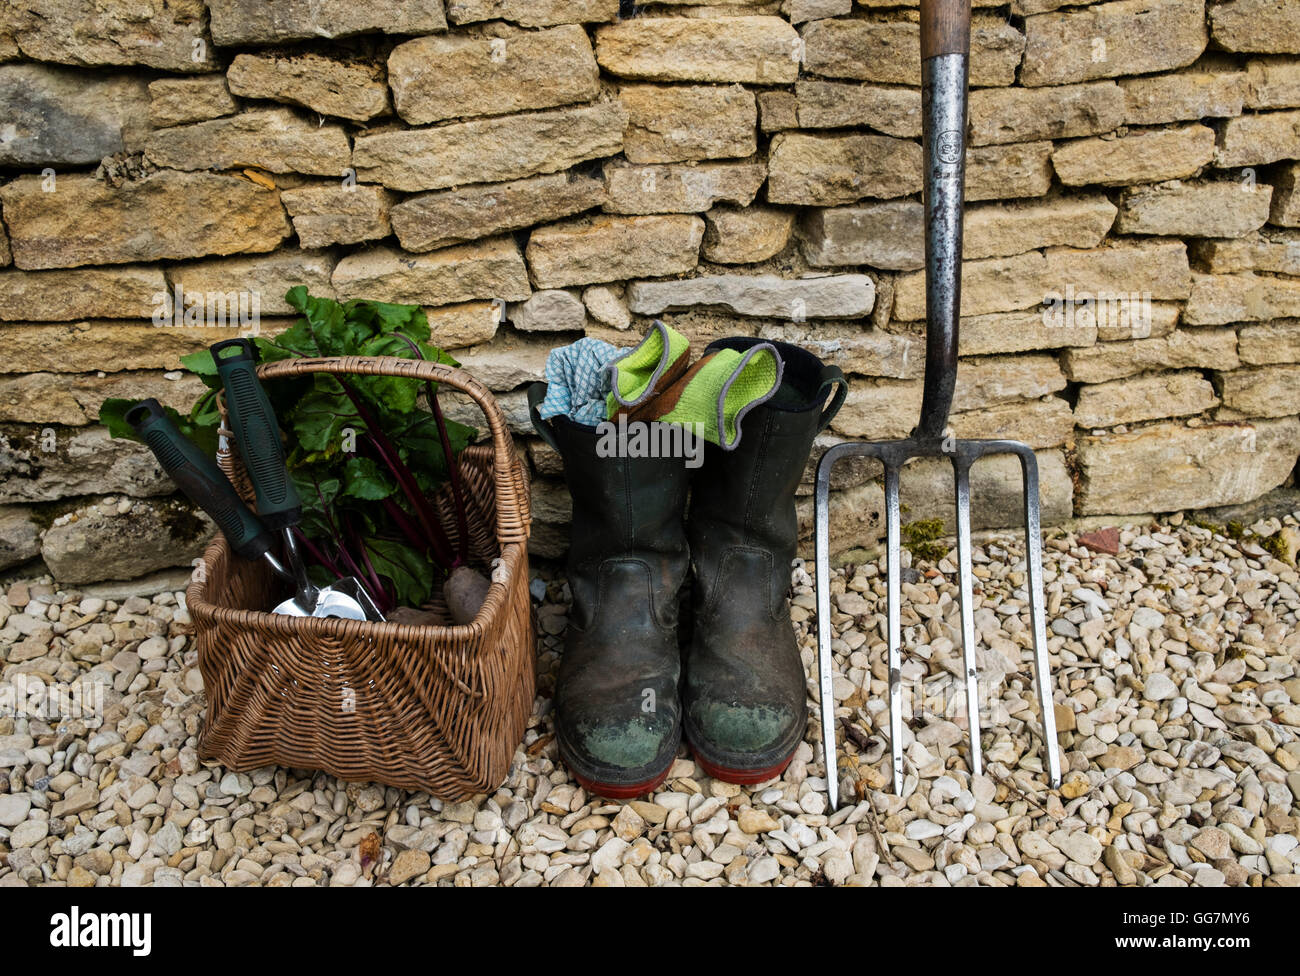 Detail of gardeners tools and boots in an English garden - Stock Image